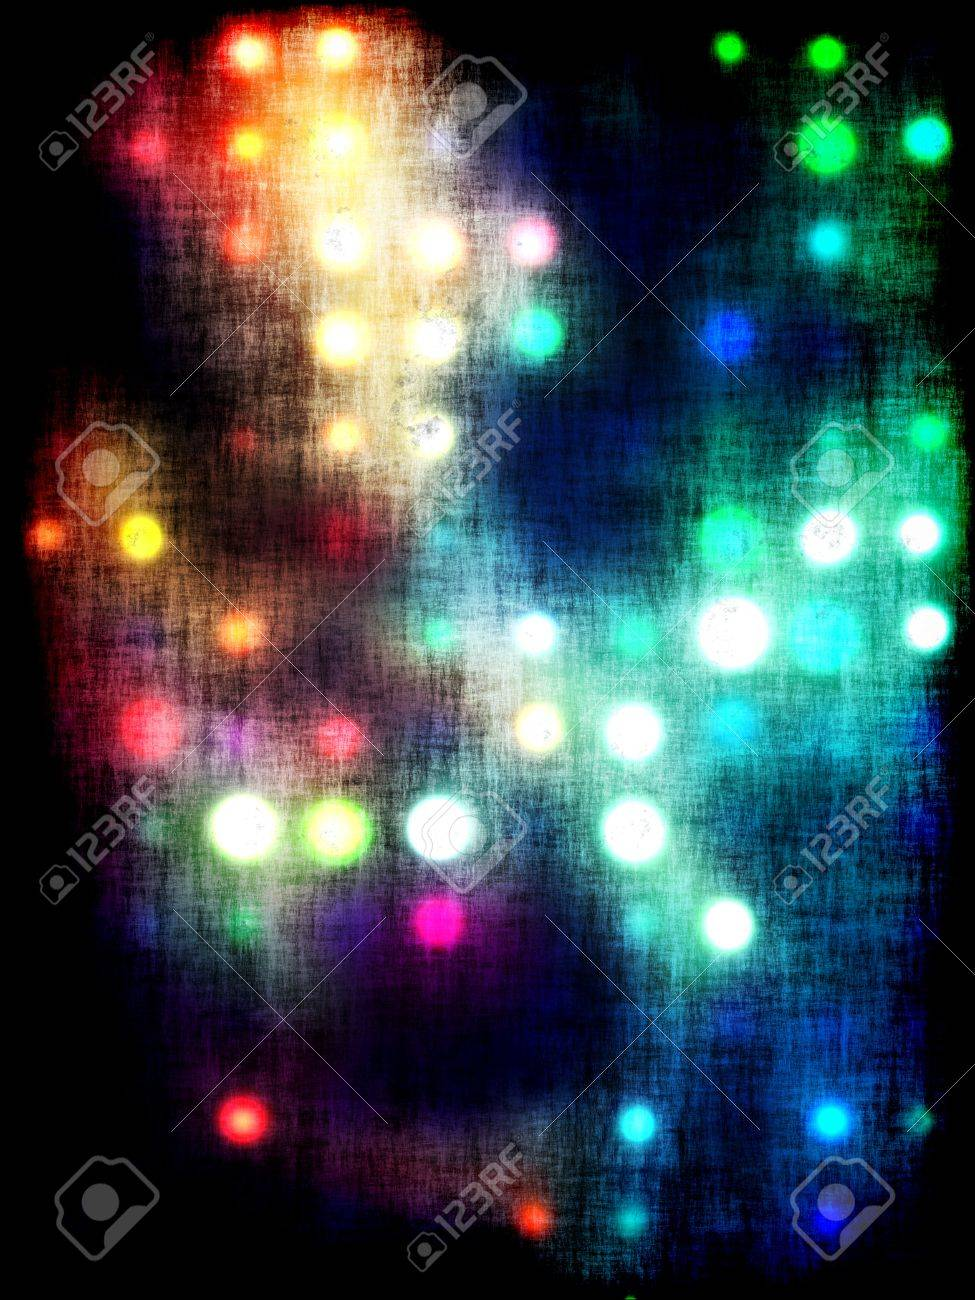 grungy dotted blurred background of colored lights Stock Photo - 11278010